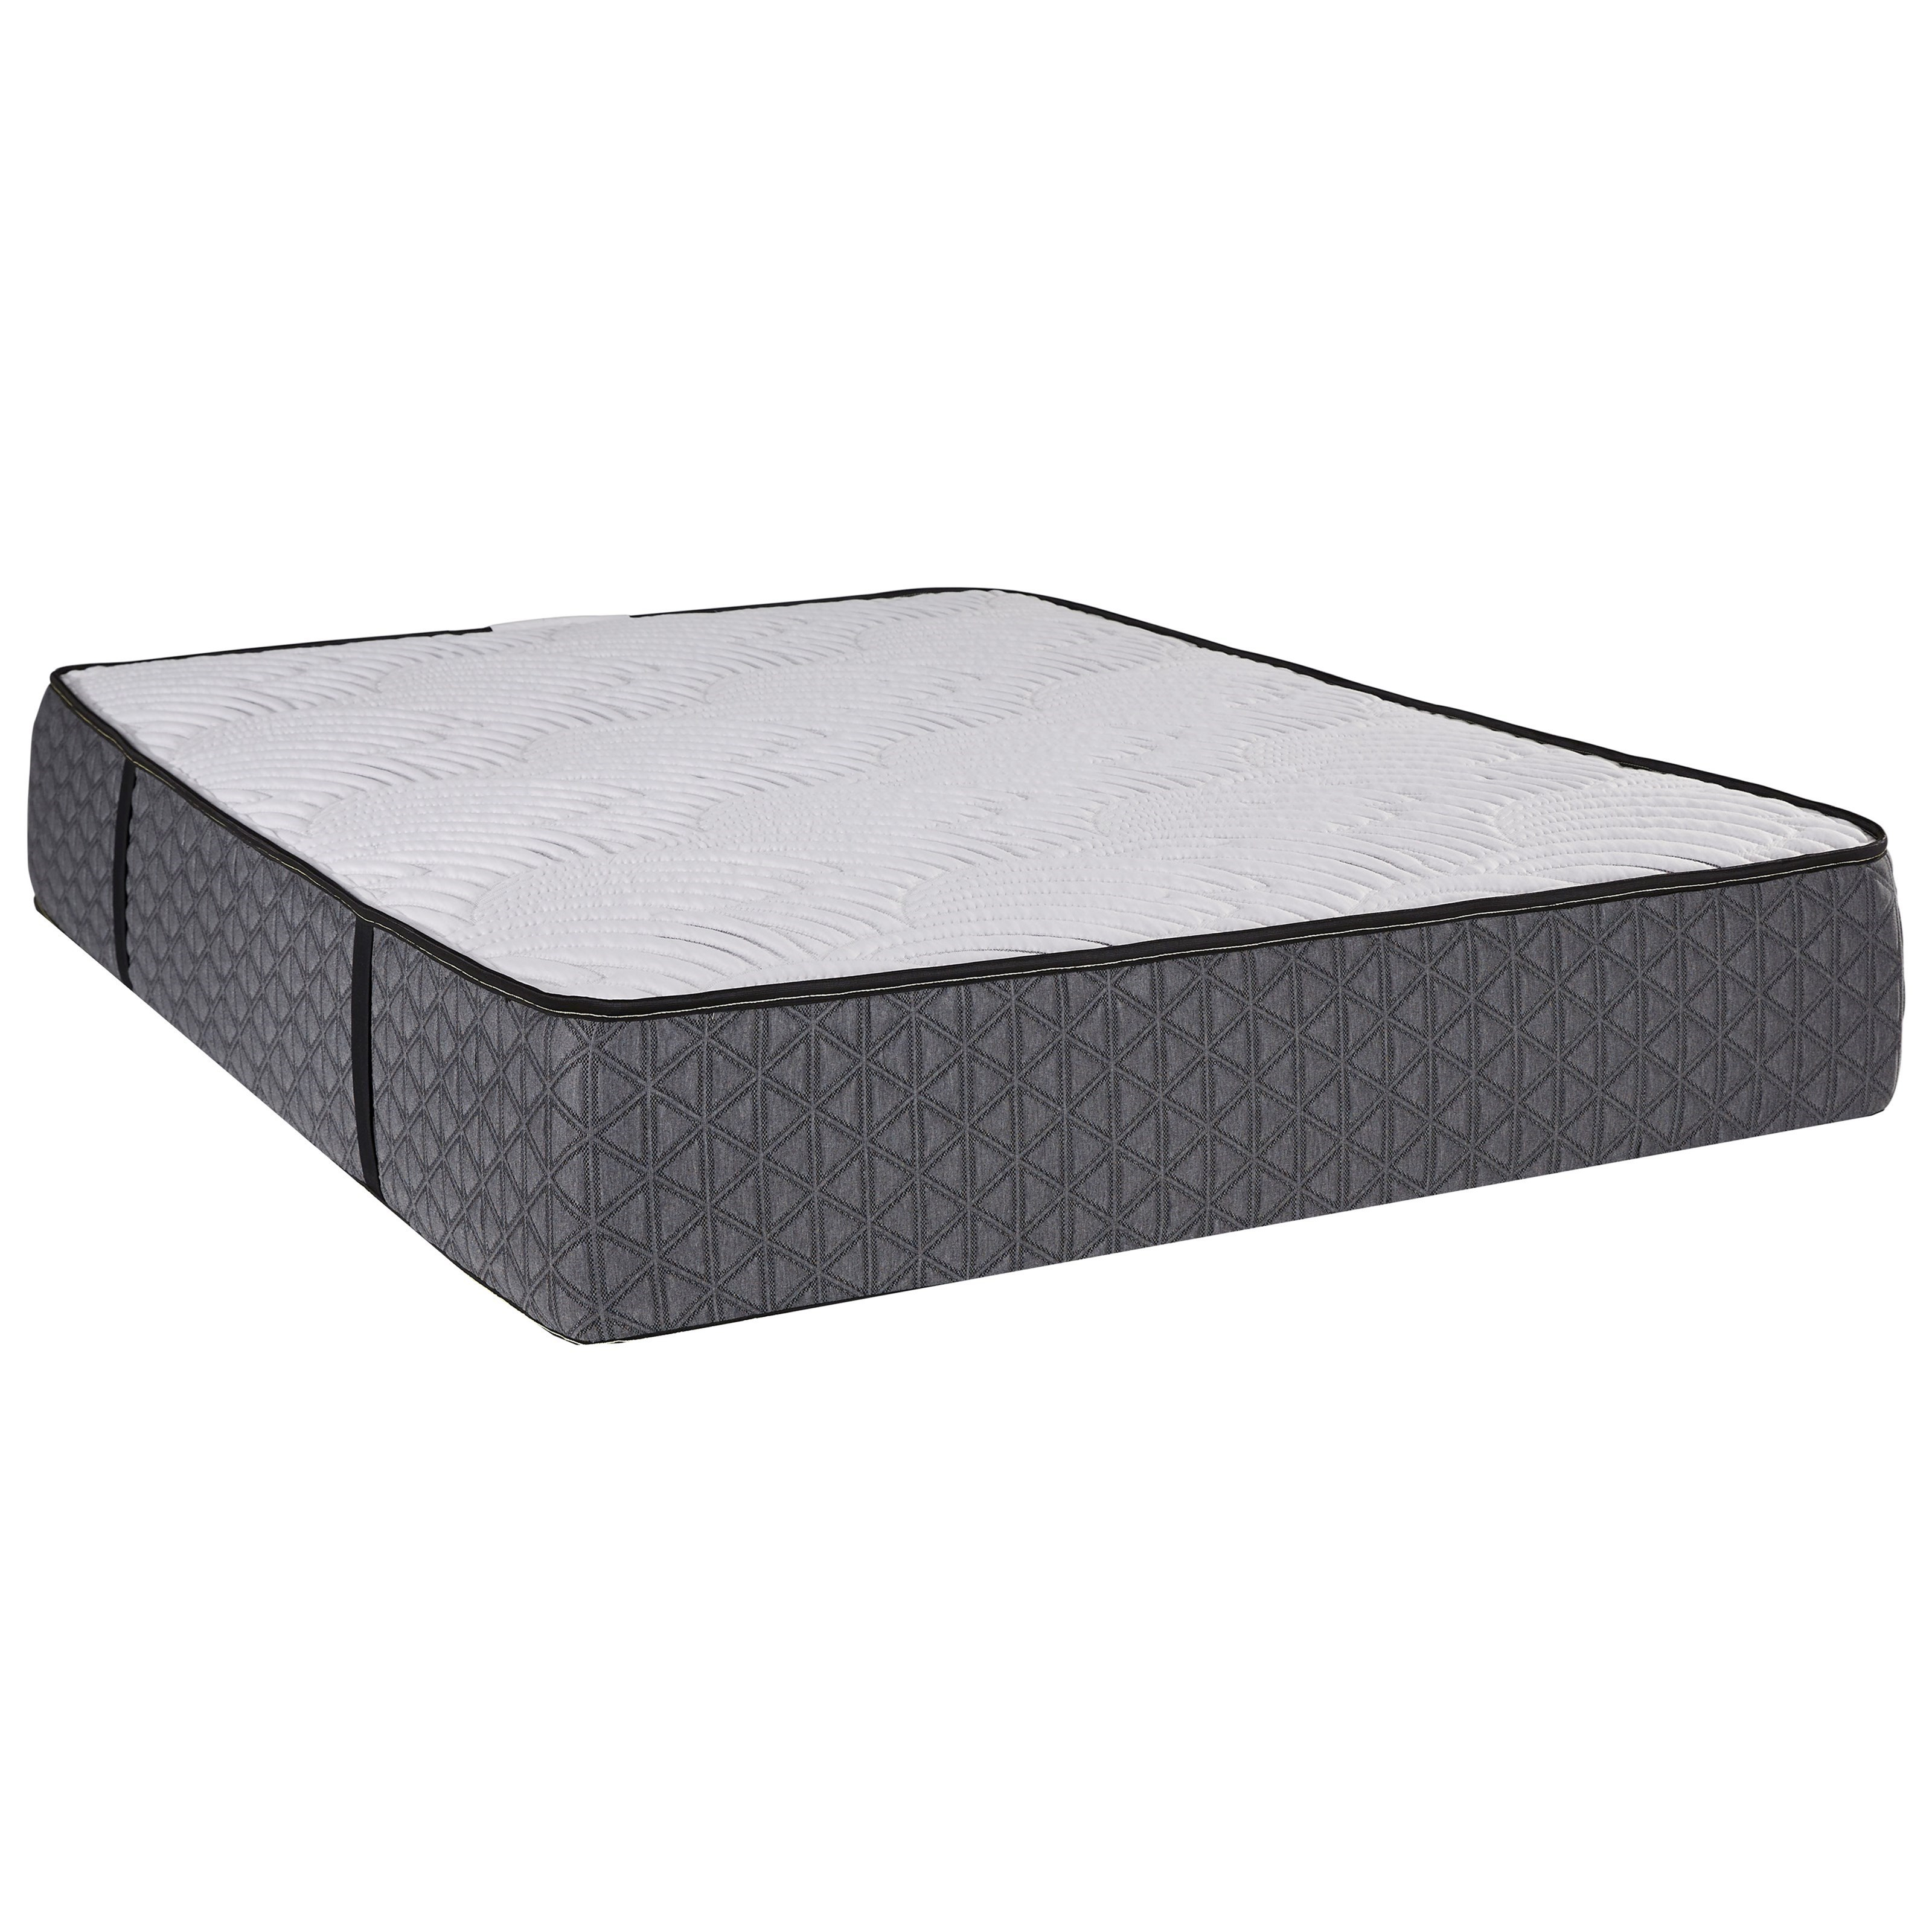 "Cal King 14"" Luxury Firm Hybrid Mattress"